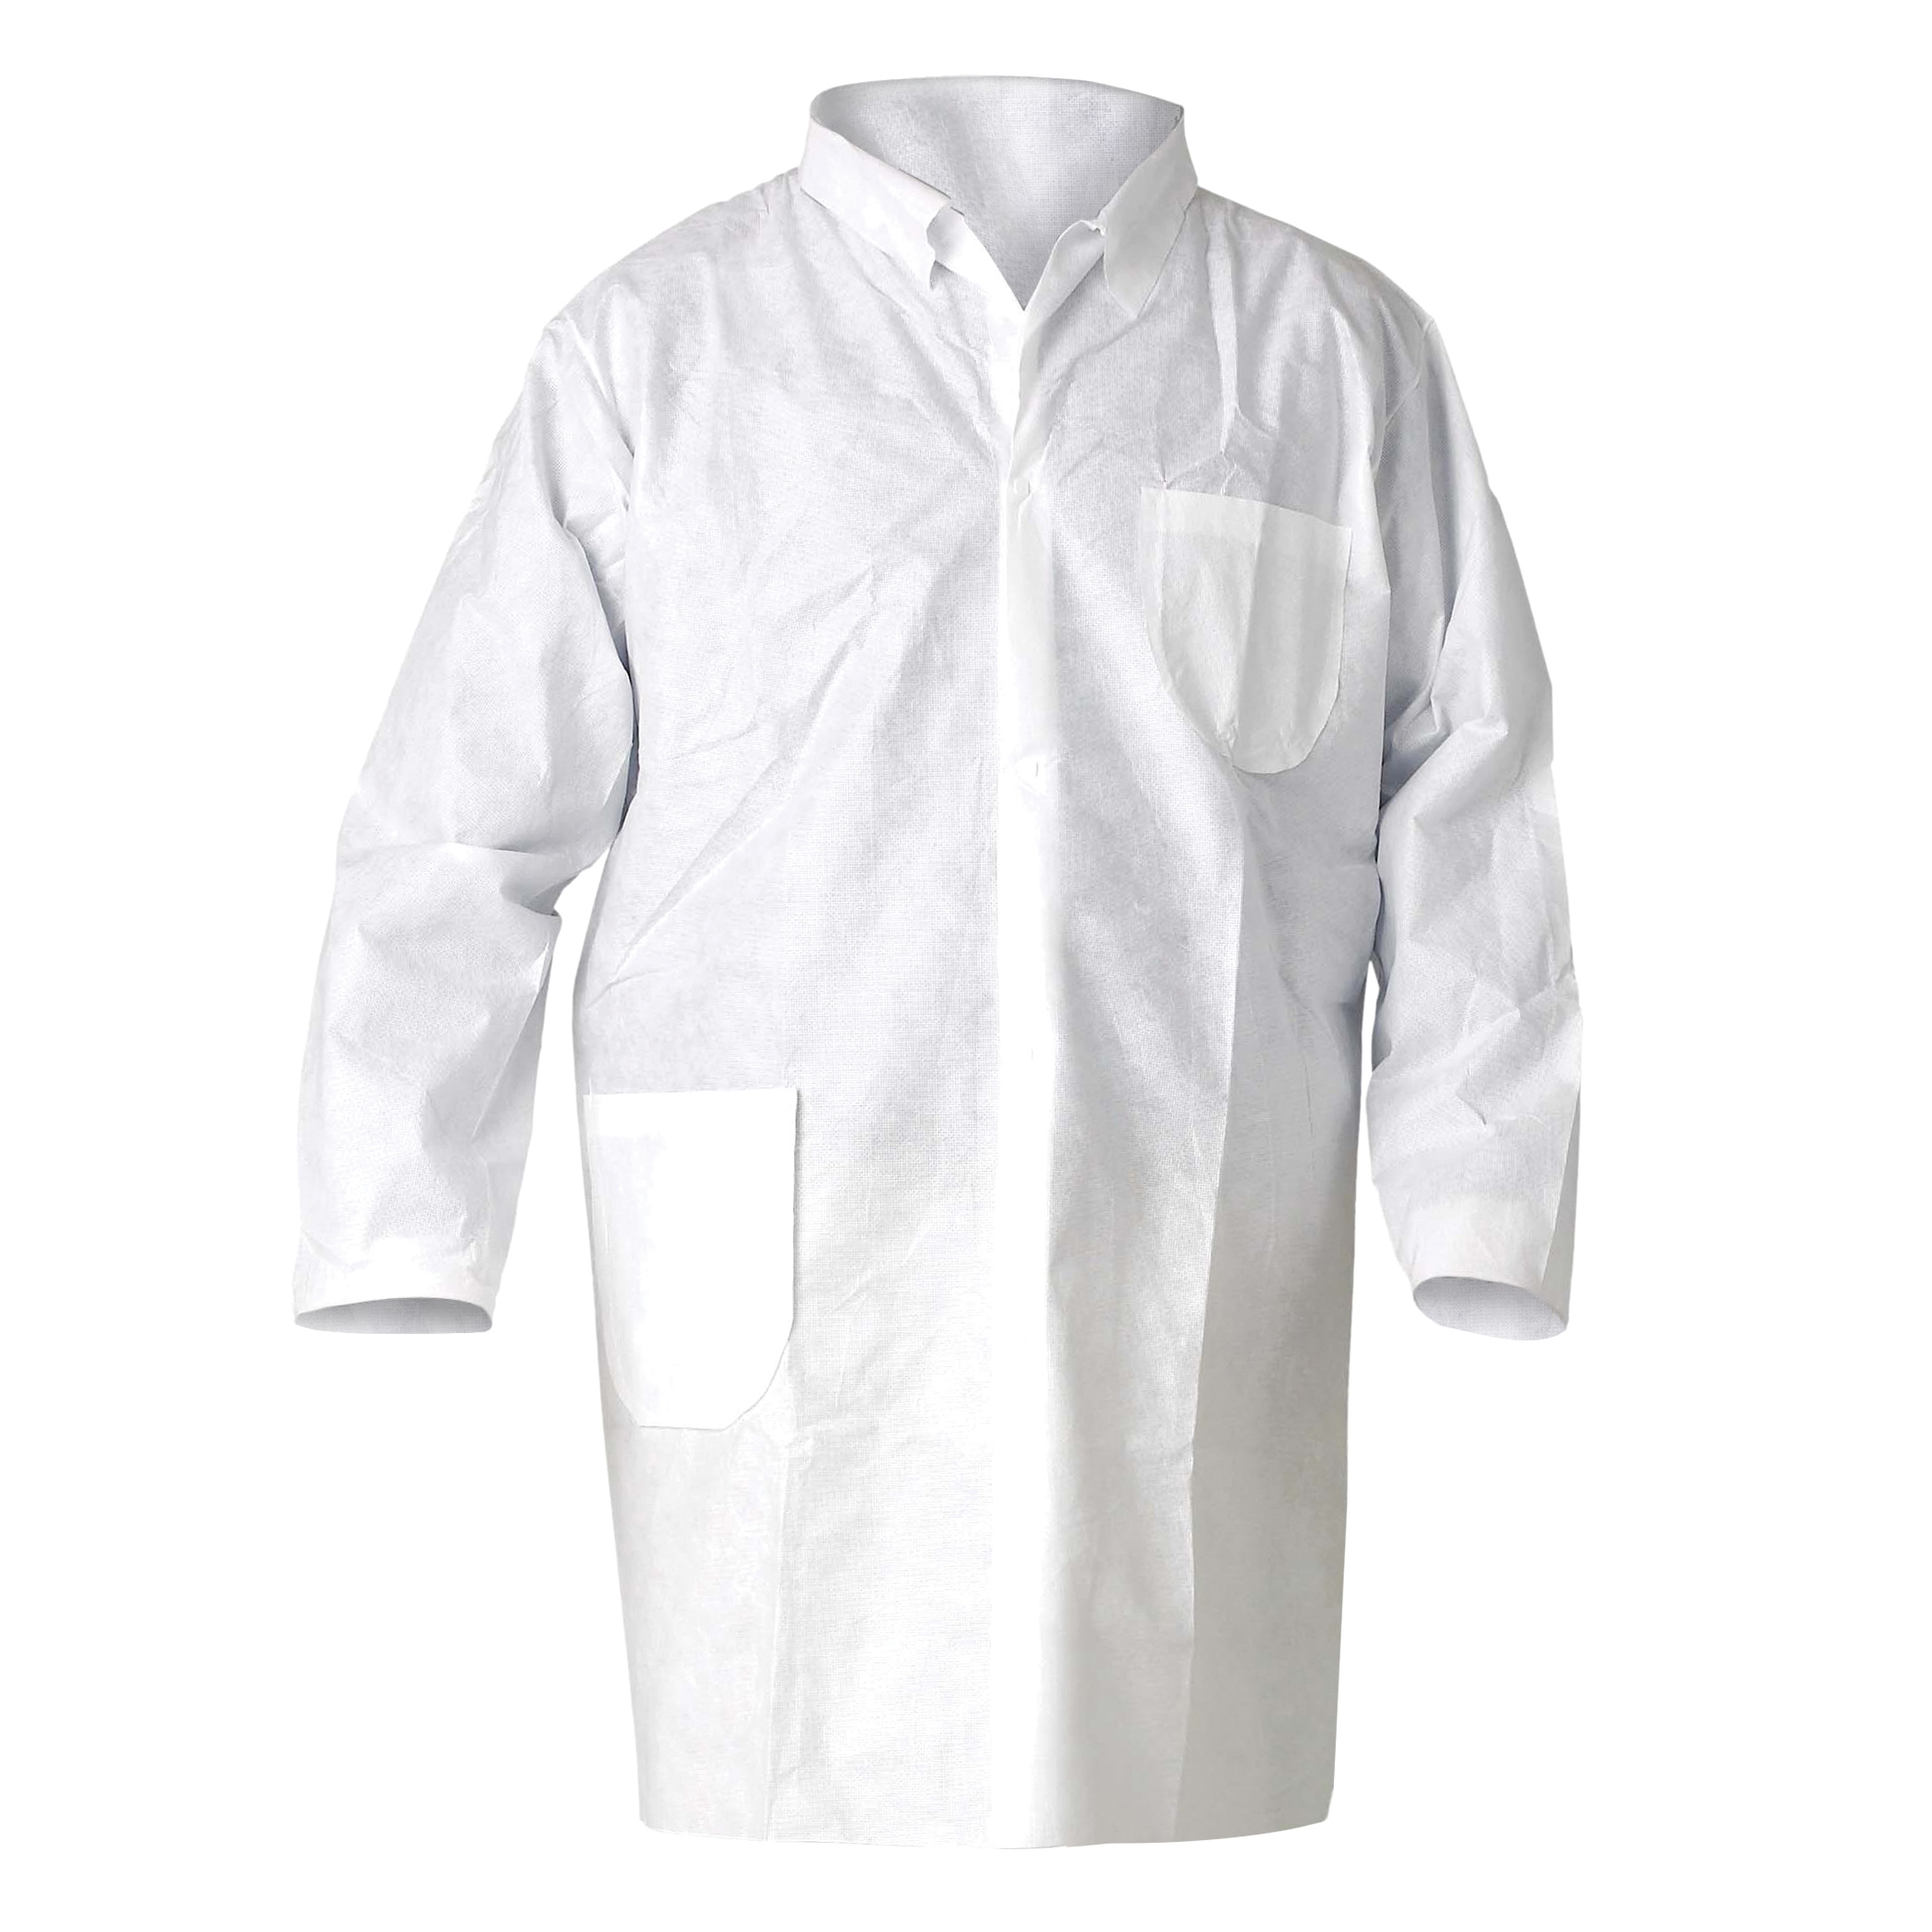 KleenGuard™ 10039 A20 Breathable Lab Coat, Unisex, XL, White, MICROFORCE* Barrier SMS Fabric, Snap Front Closure, 2 Pockets, TAA Complaint, NFPA 99